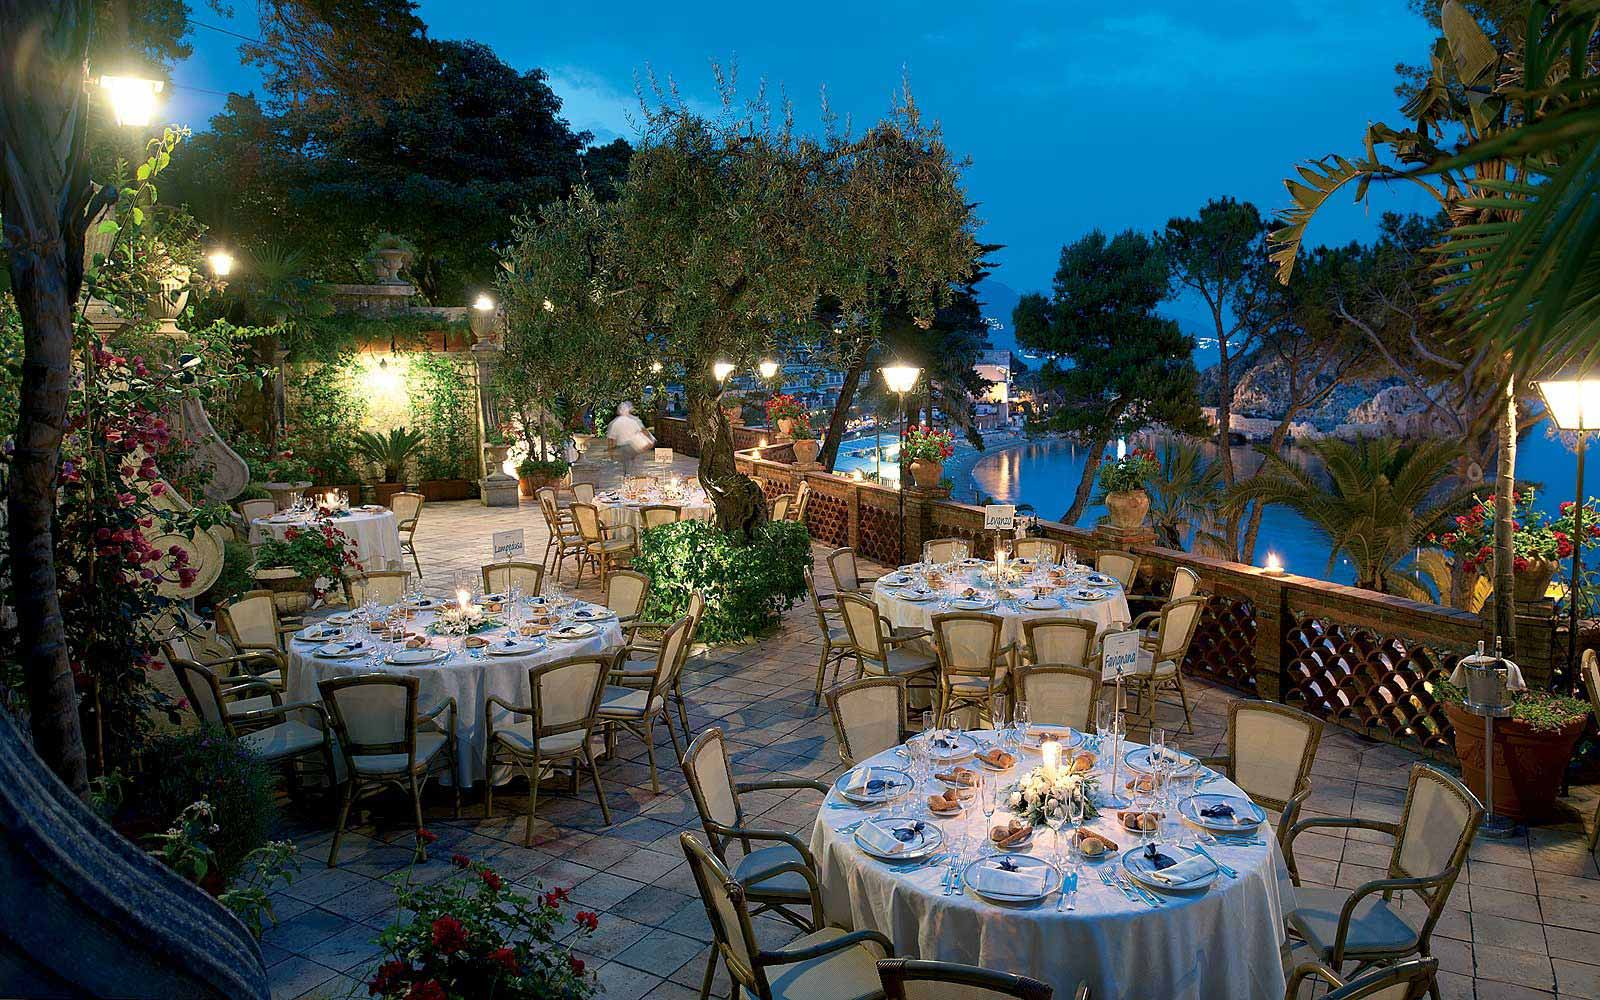 Banquet terrace at night at Belmond Villa Sant' Andrea